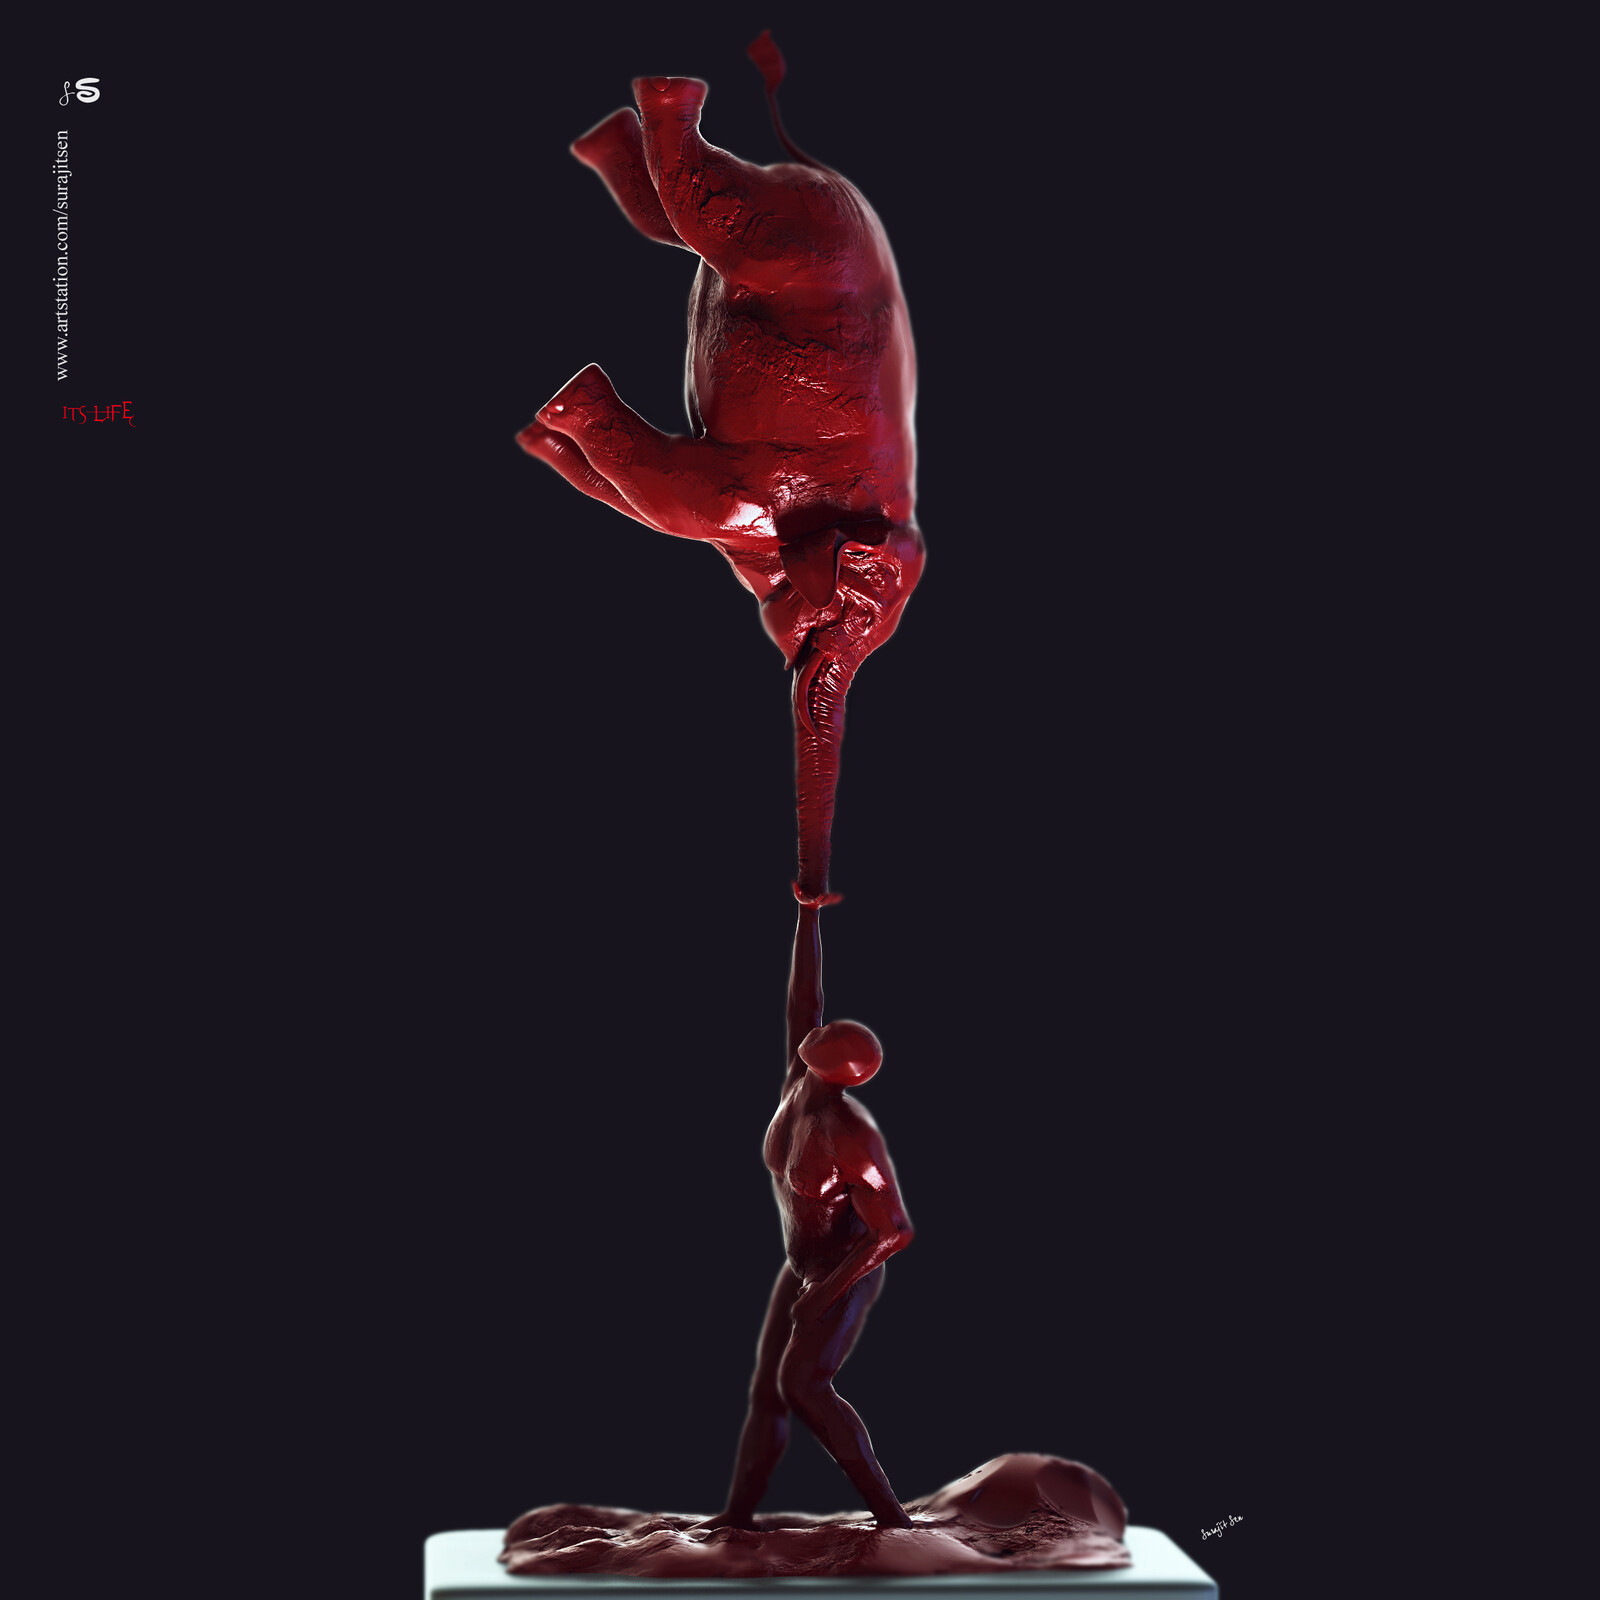 It's life!